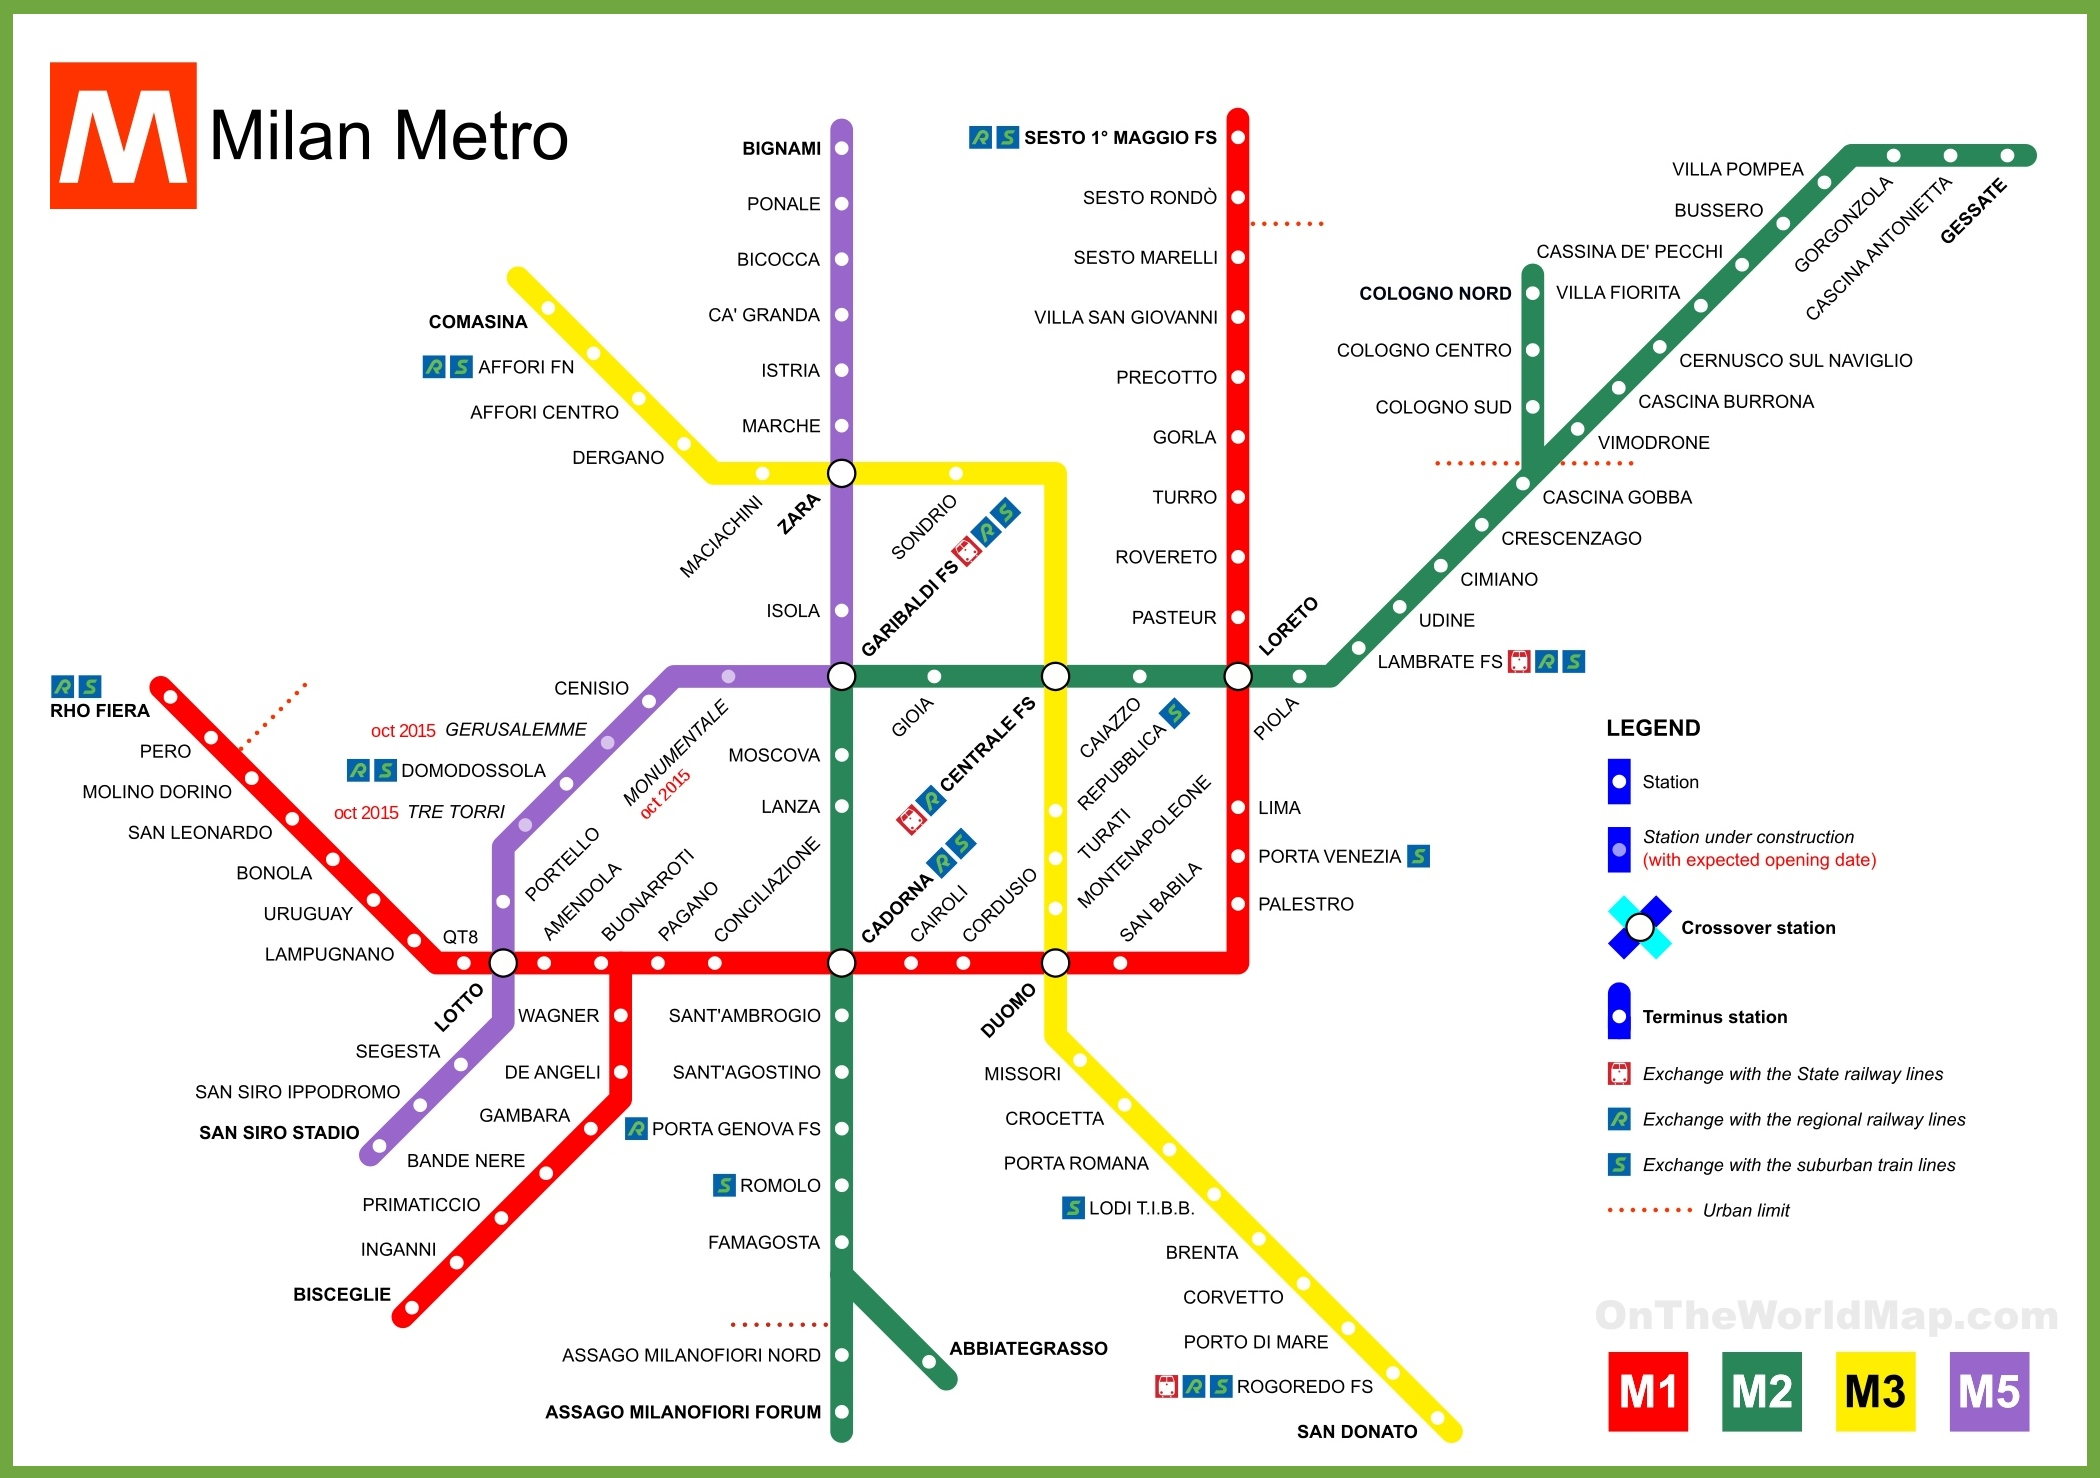 World city subway maps